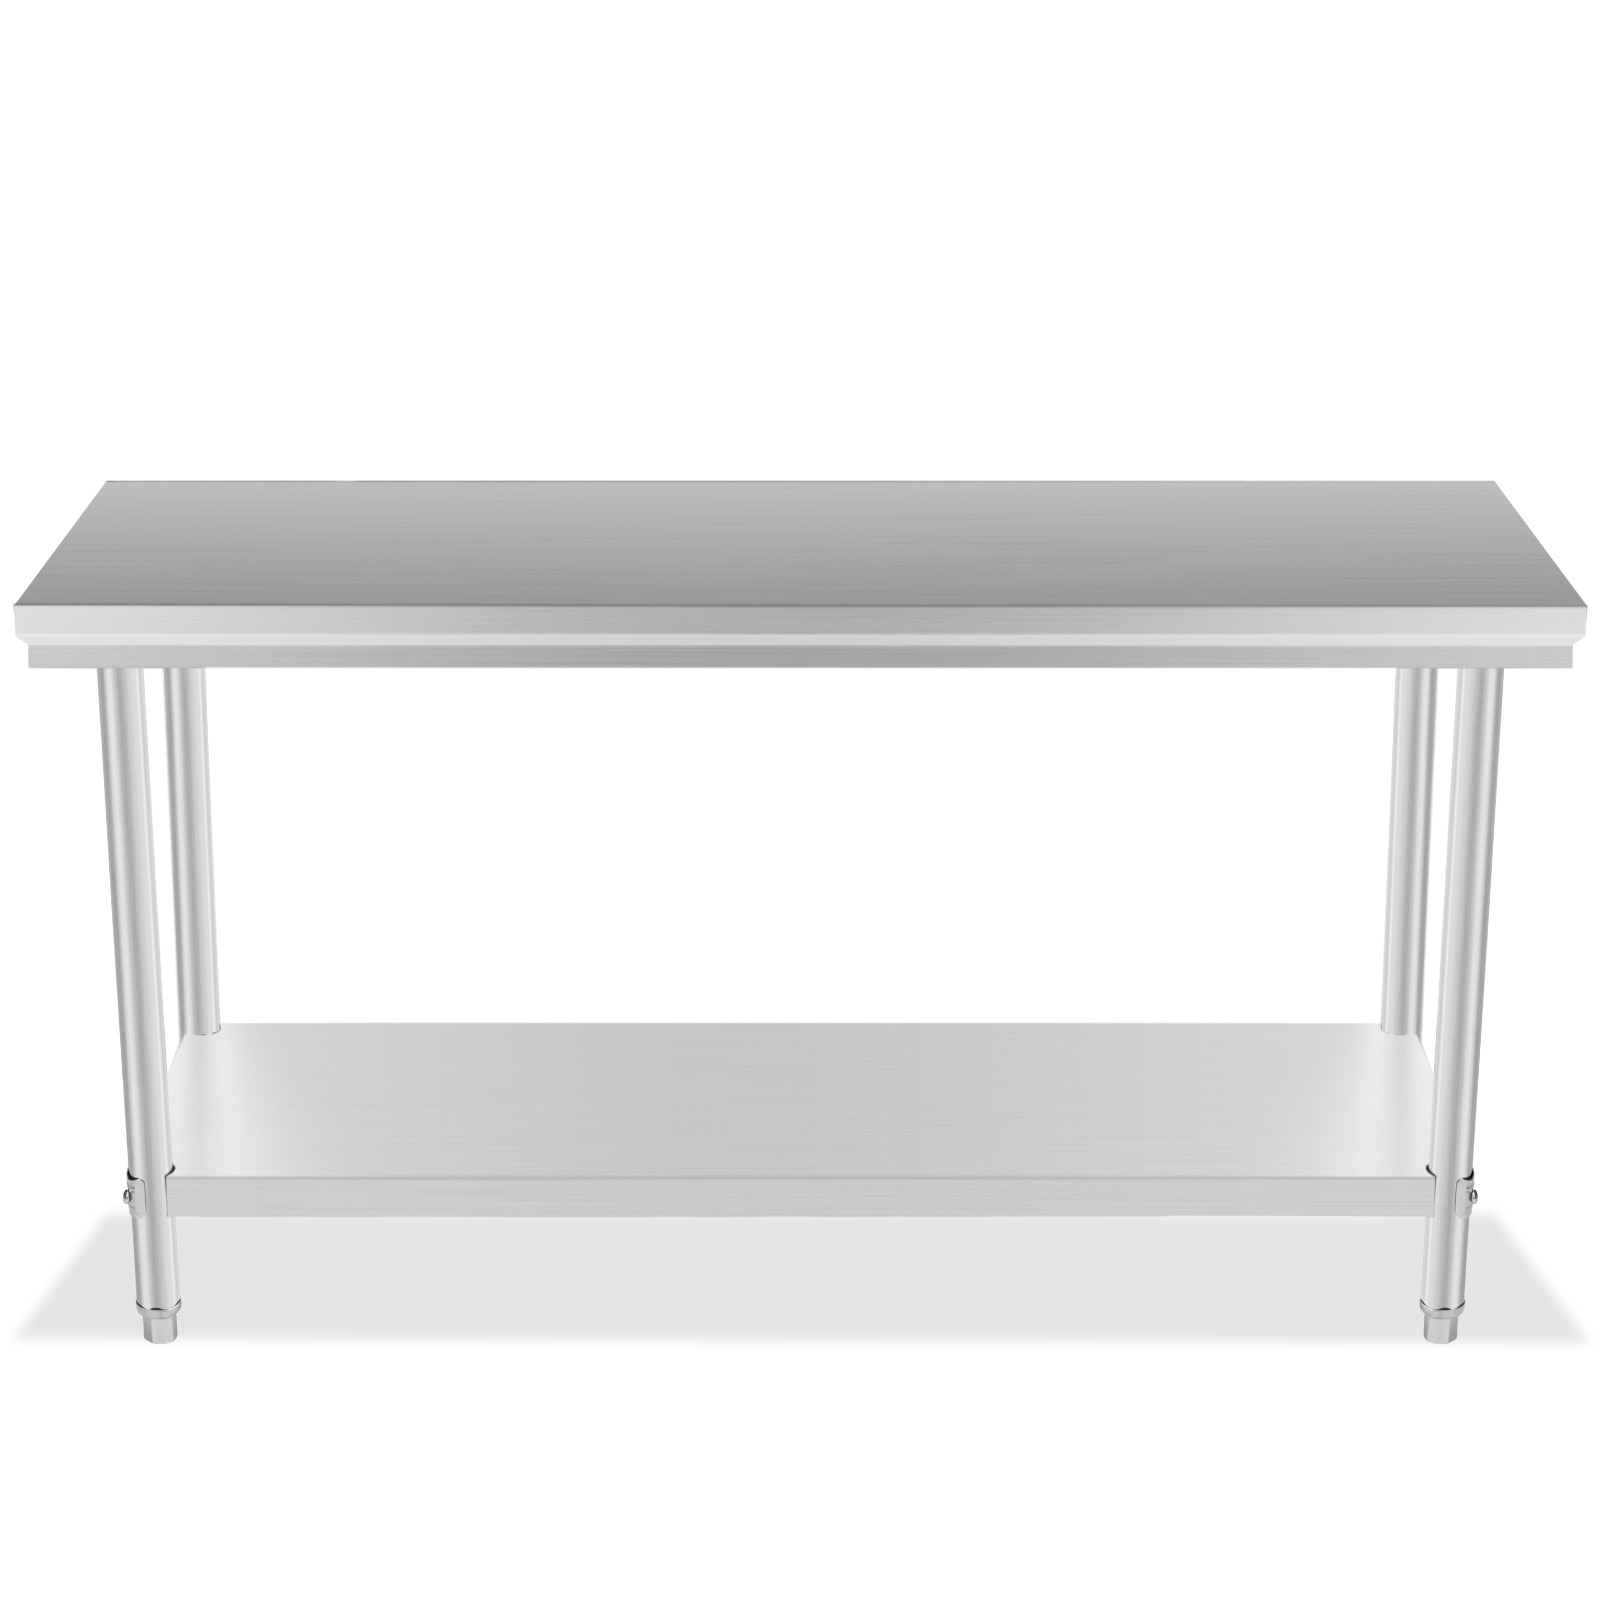 "Industrial Kitchen Prep Table: 24"" X 48"" Commercial 201 Stainless Steel Kitchen Work"